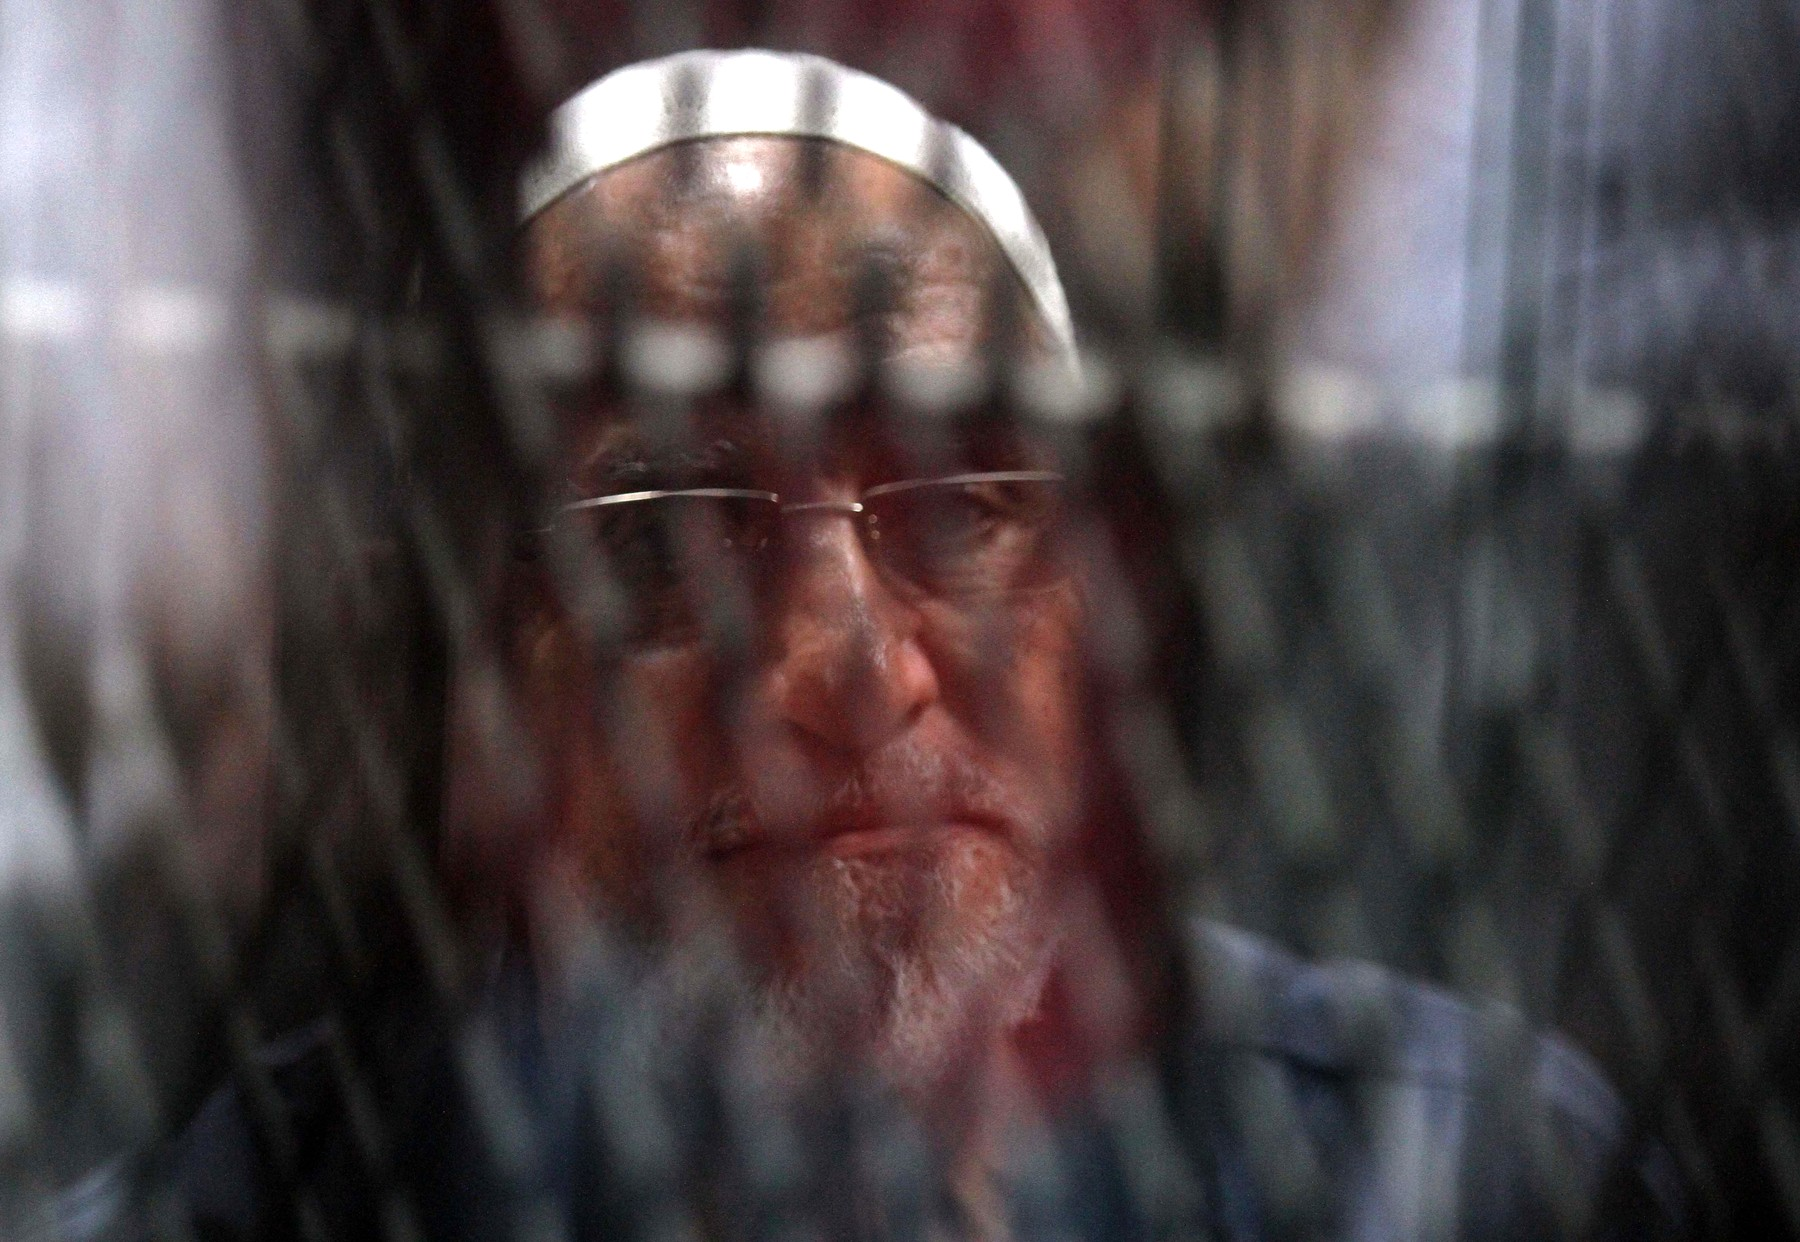 Egyptian Muslim Brotherhood Supreme Guide Mohamed Badie is seen behind bars during a verdict and sentencing session of a retrial for him and other Brotherhood members on charges of espionage with the Palestinian Hamas group at the Tora courthouse complex in southeastern Cairo on September 11, 2019. An Egyptian court on September 11 sentenced senior Muslim Brotherhood figures to life, a judicial source said. The defendants included the Brotherhood leader Mohamed Badie and his deputy Khairat al-Shater who were both handed life sentences -- 25 years. The court handed down five other defendants between seven to 10 year prison sentences. Only six were acquitted., Image: 470311677, License: Rights-managed, Restrictions: , Model Release: no, Credit line: Profimedia, AFP